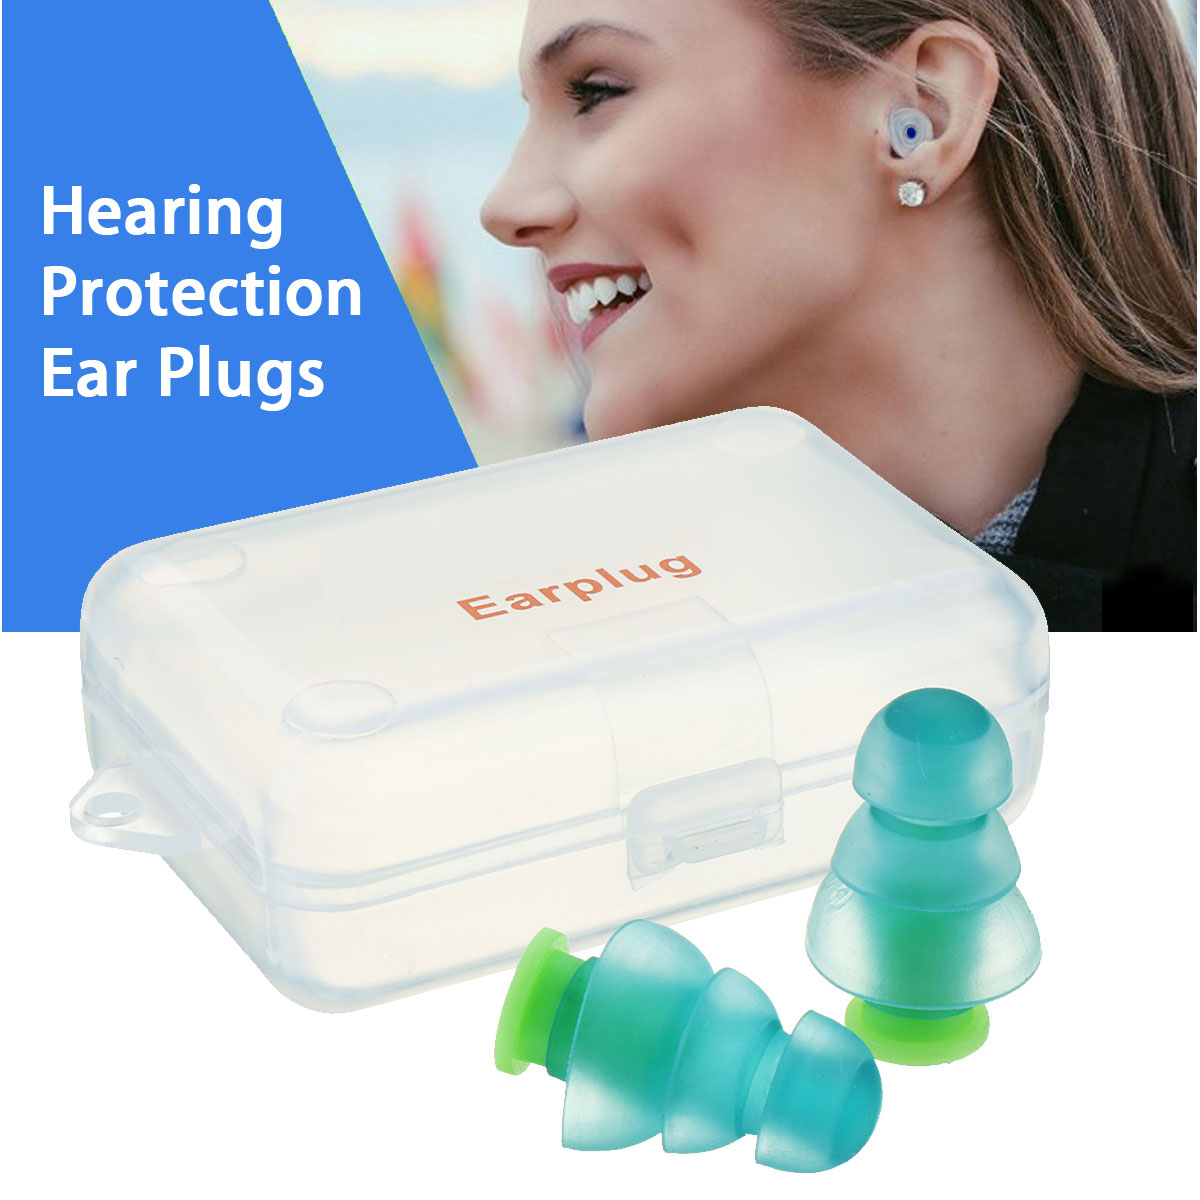 Corded Silicon Noise Cancelling Hearing Protectors 2 Pairs Earplugs with Case